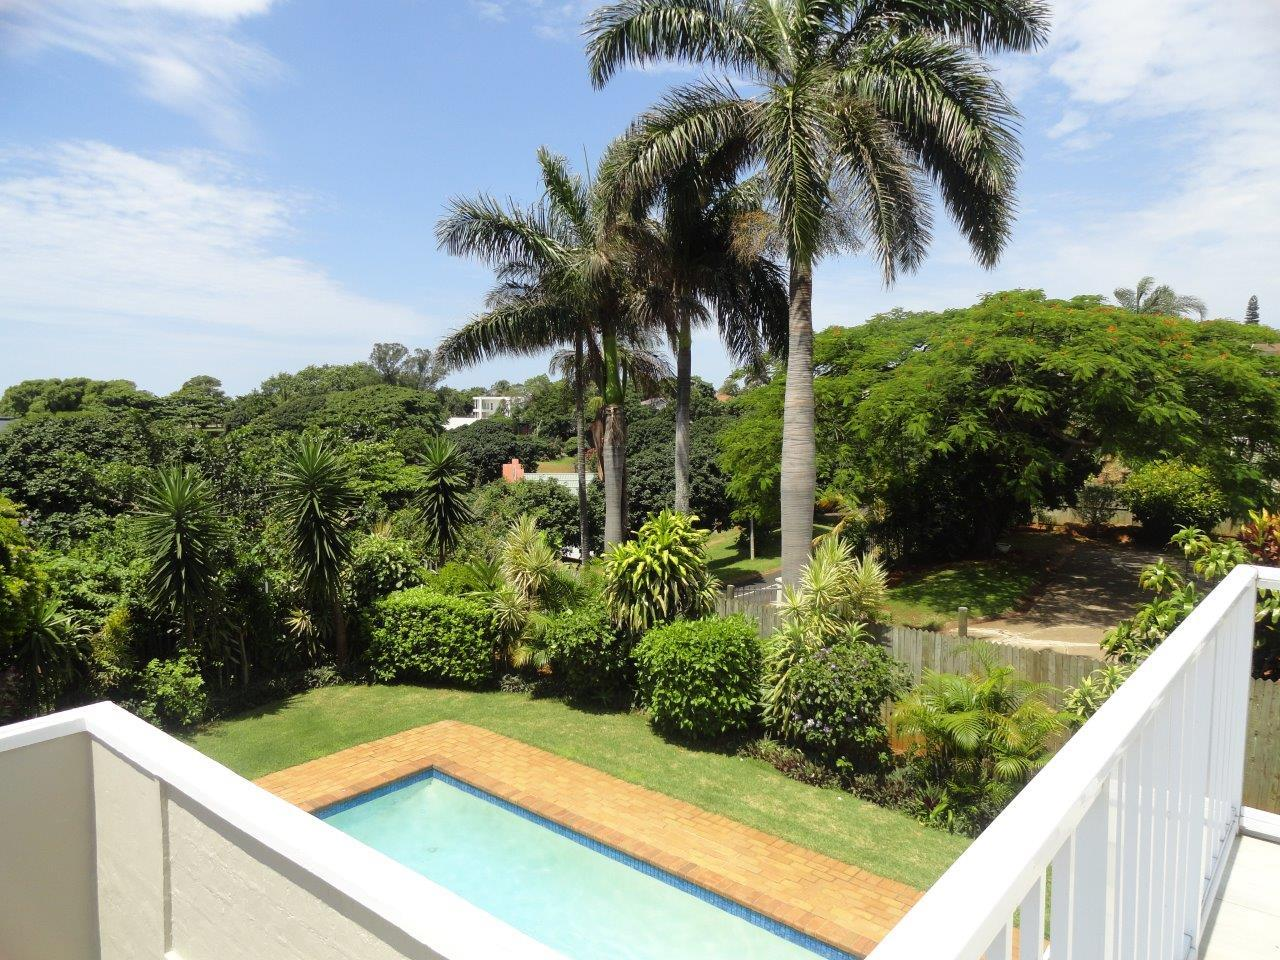 3 Bedroom House for sale in La Lucia 1802448 : photo#17